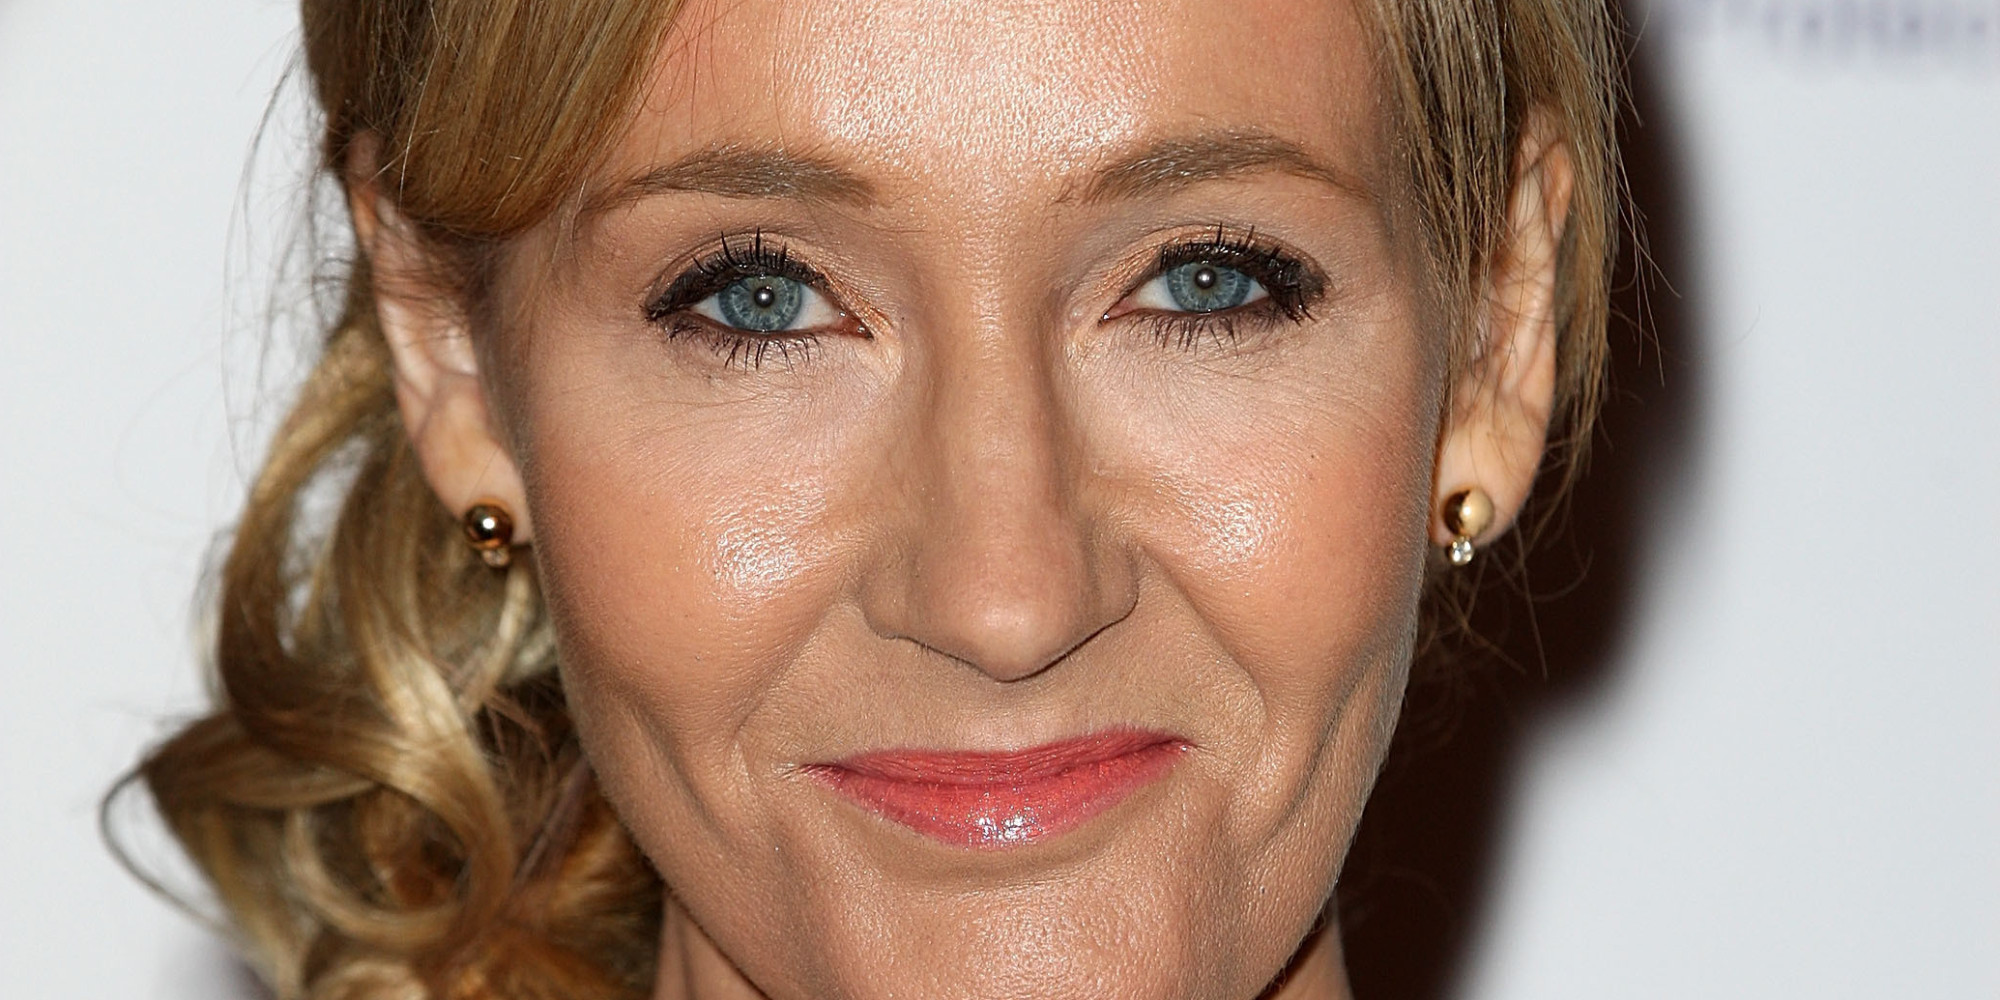 forbes billionaire list jk rowling drops from billionaire to forbes billionaire list jk rowling drops from billionaire to millionaire due to charitable giving the huffington post